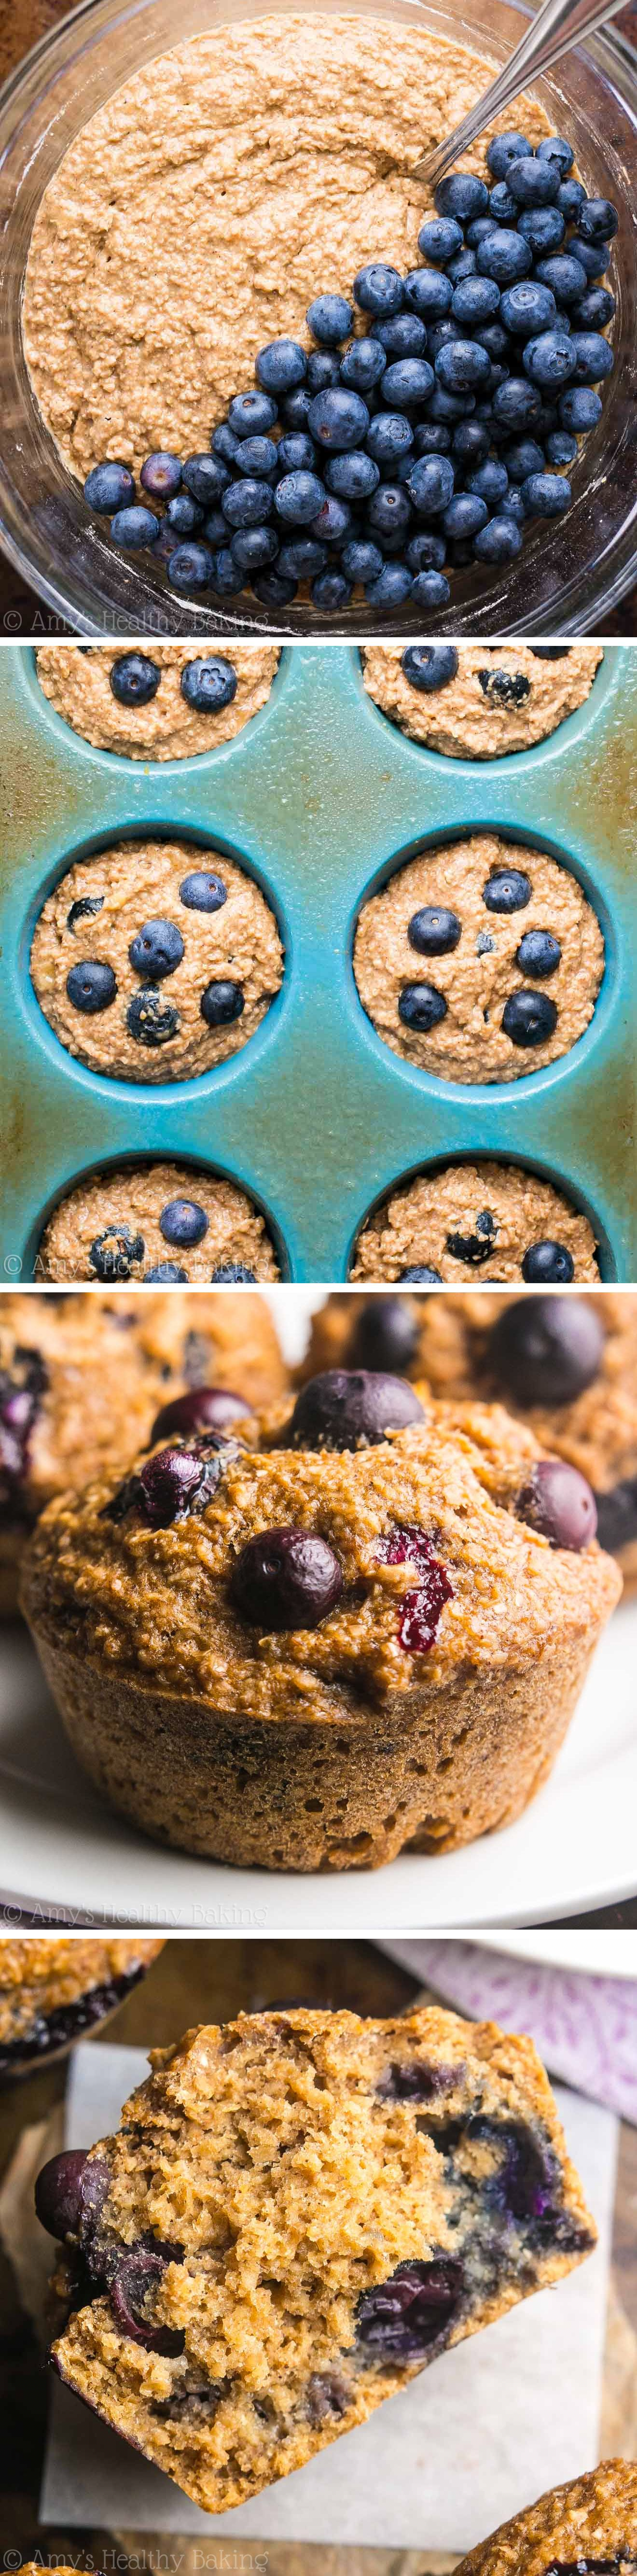 Healthy Blueberry Banana Bran Muffins An Easy No Fuss